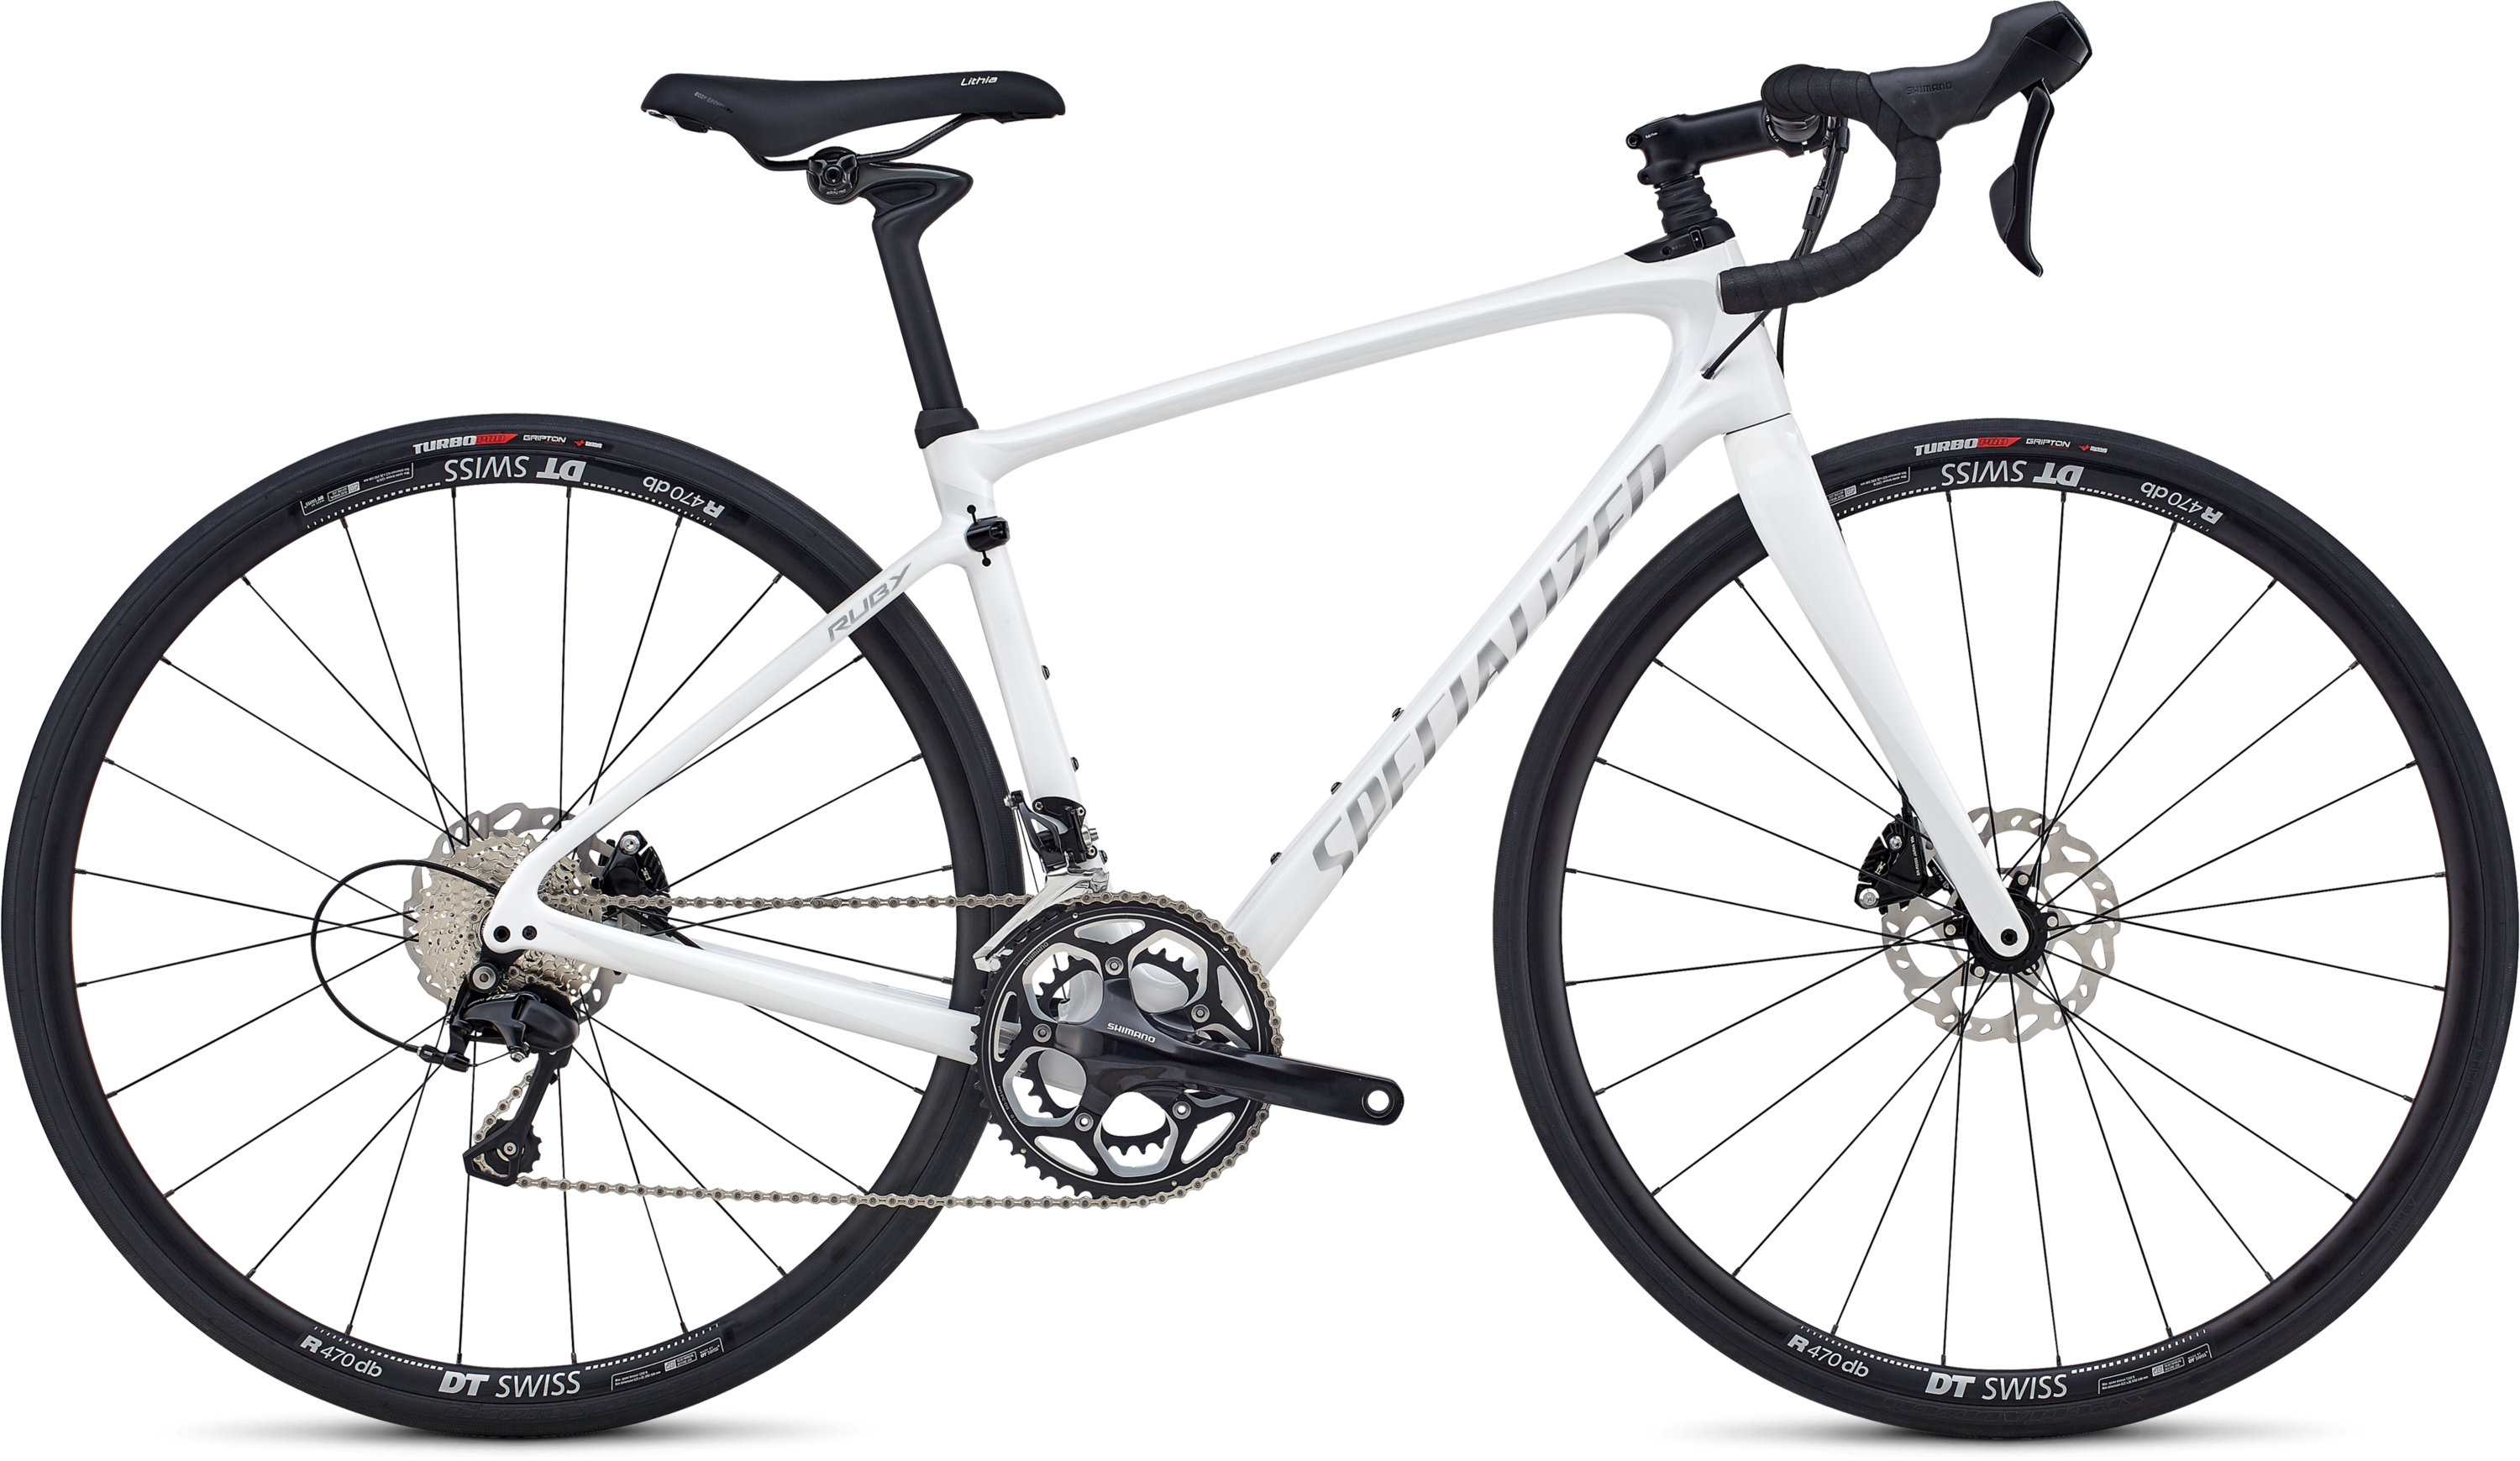 862a2c92fcc 2018 Specialized Ruby Elite - Specialized Concept Store